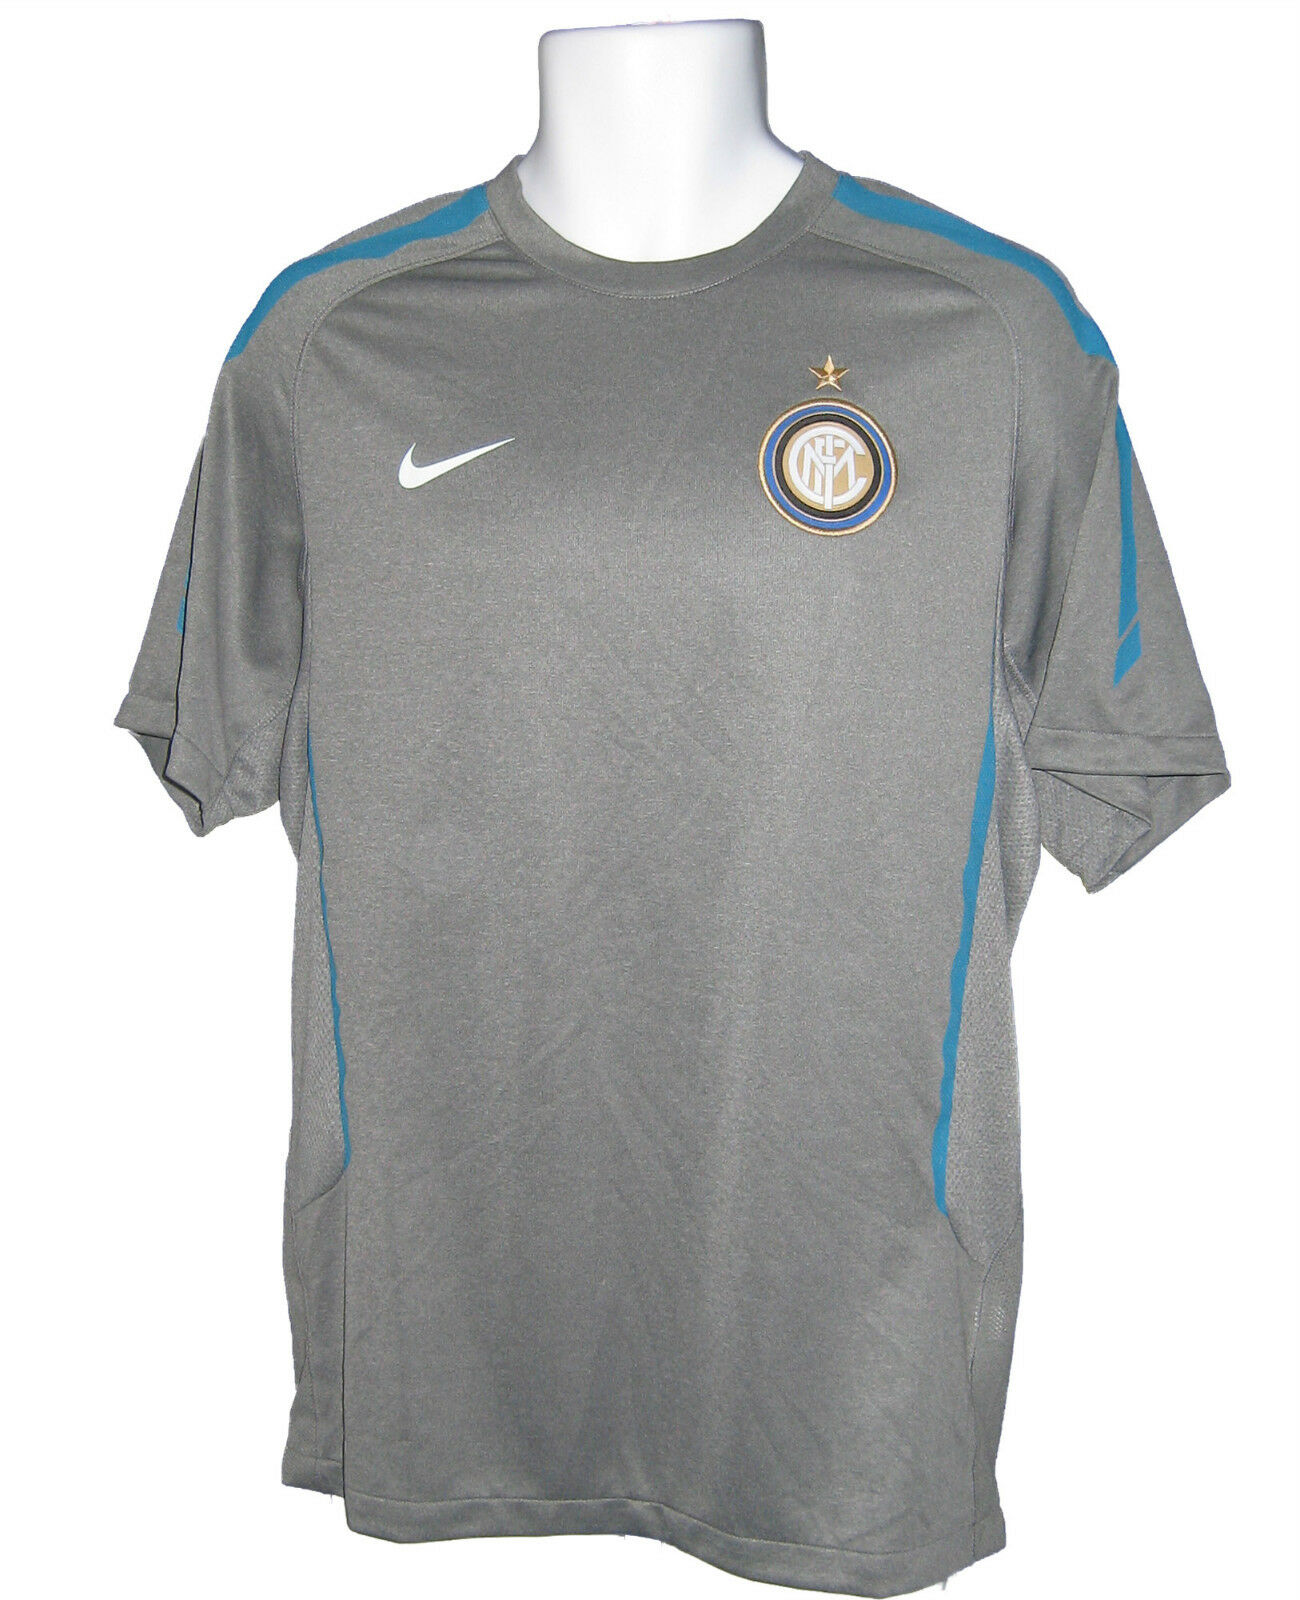 Neues NIKE INTER MILAN FOOTBALL Training Pre Match Shirt grau M